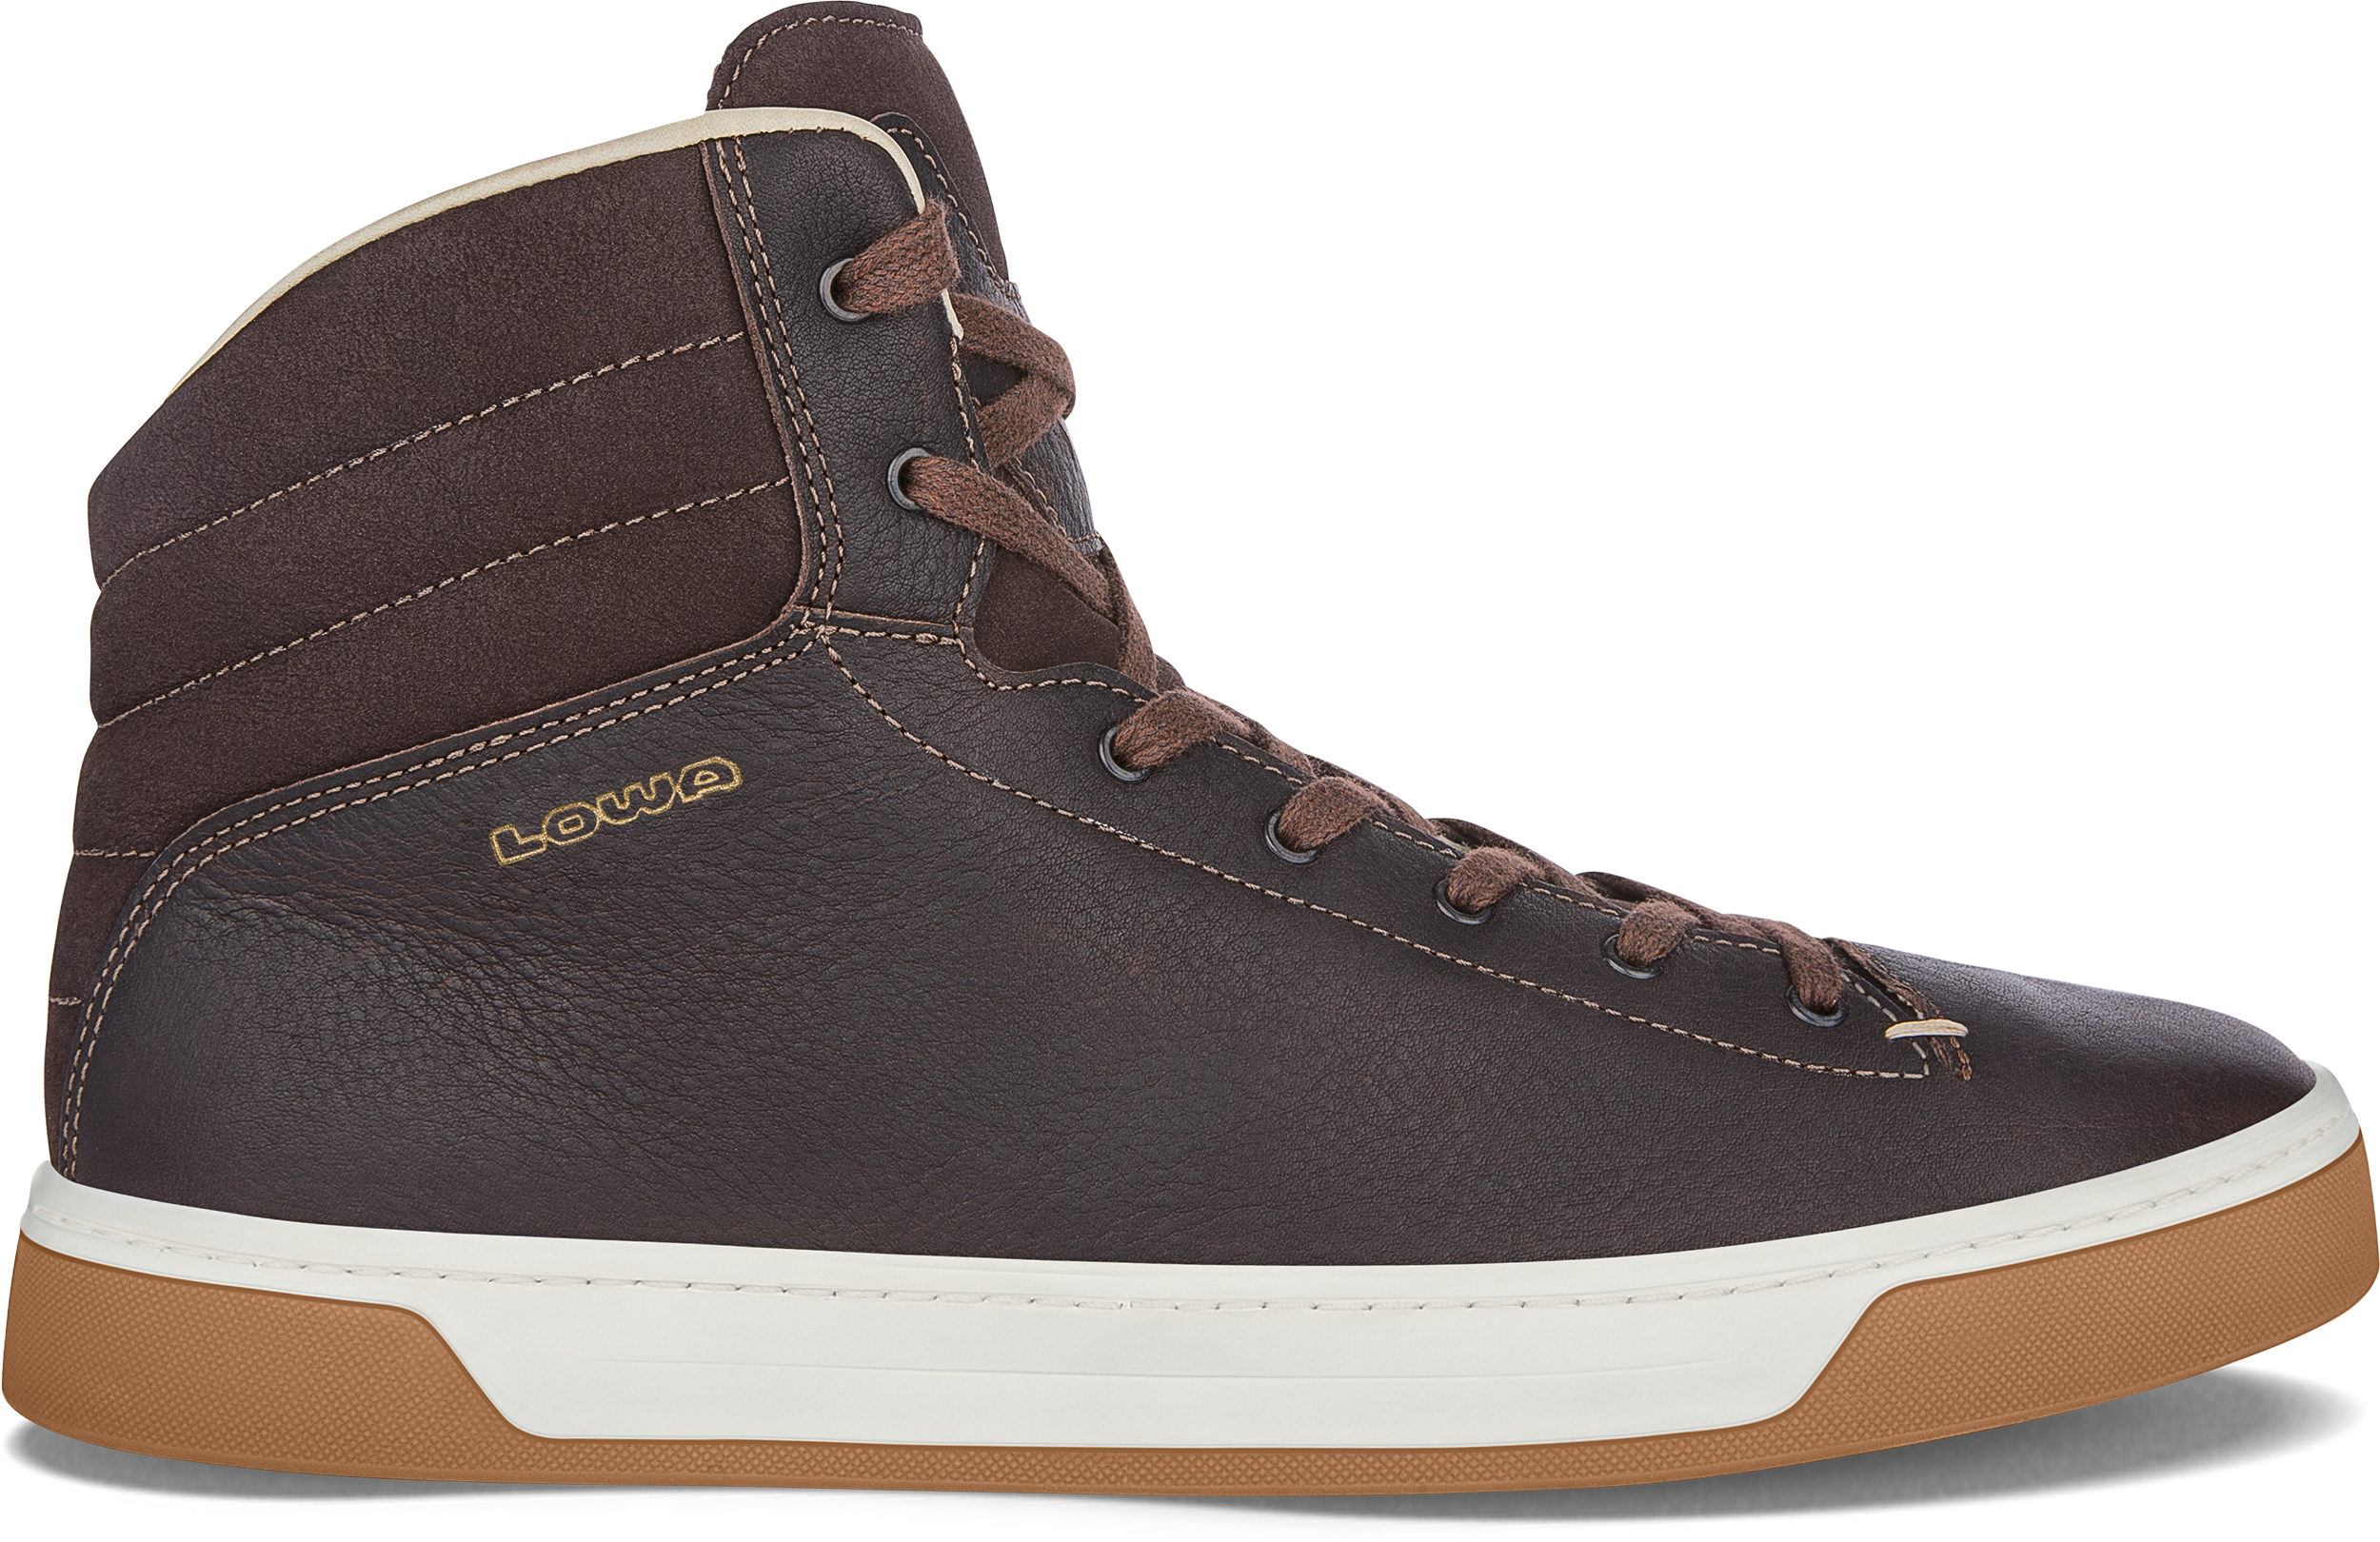 Cortina Ll Everyday Shoes For Men Lowa En